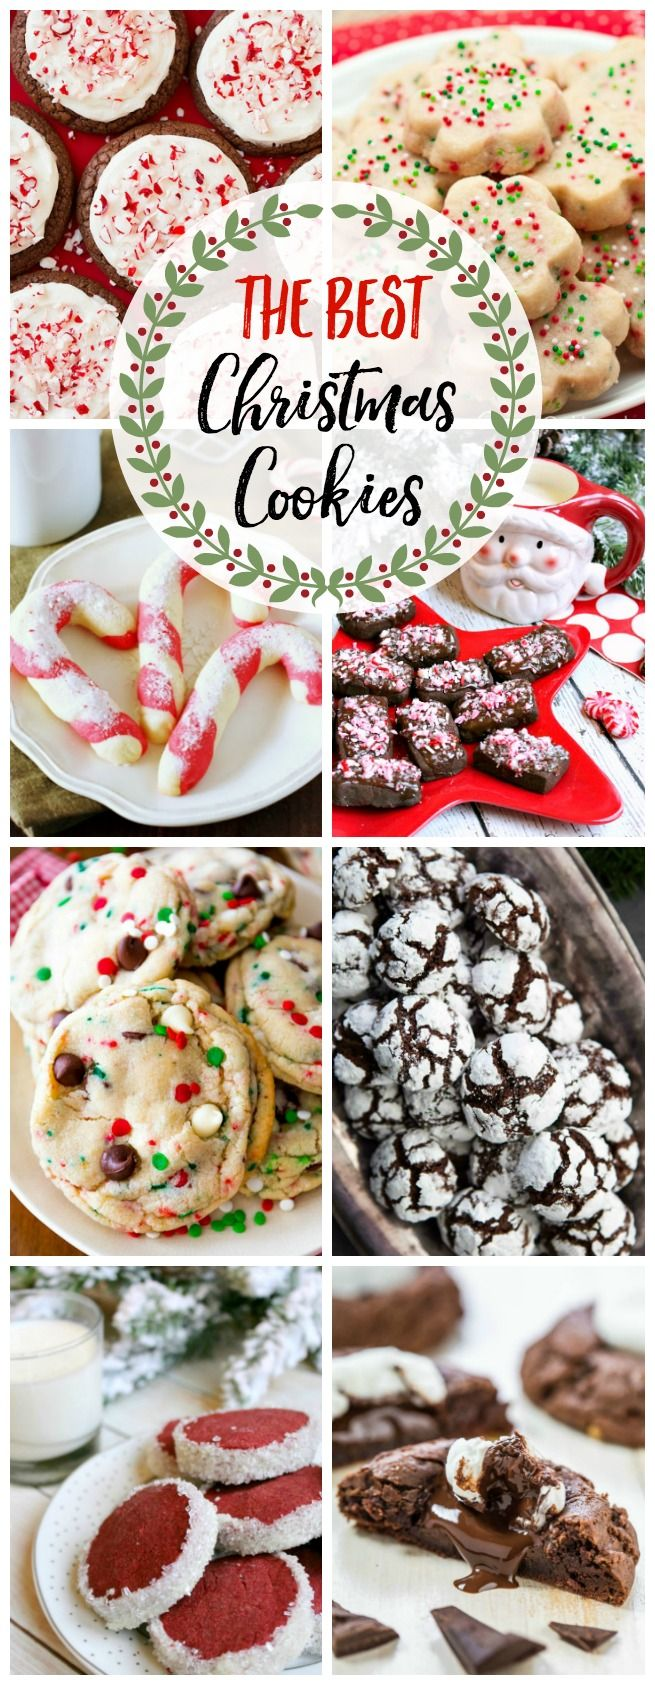 Diy Gifts Try Some Of These Delicious Christmas Cookie Recipes For